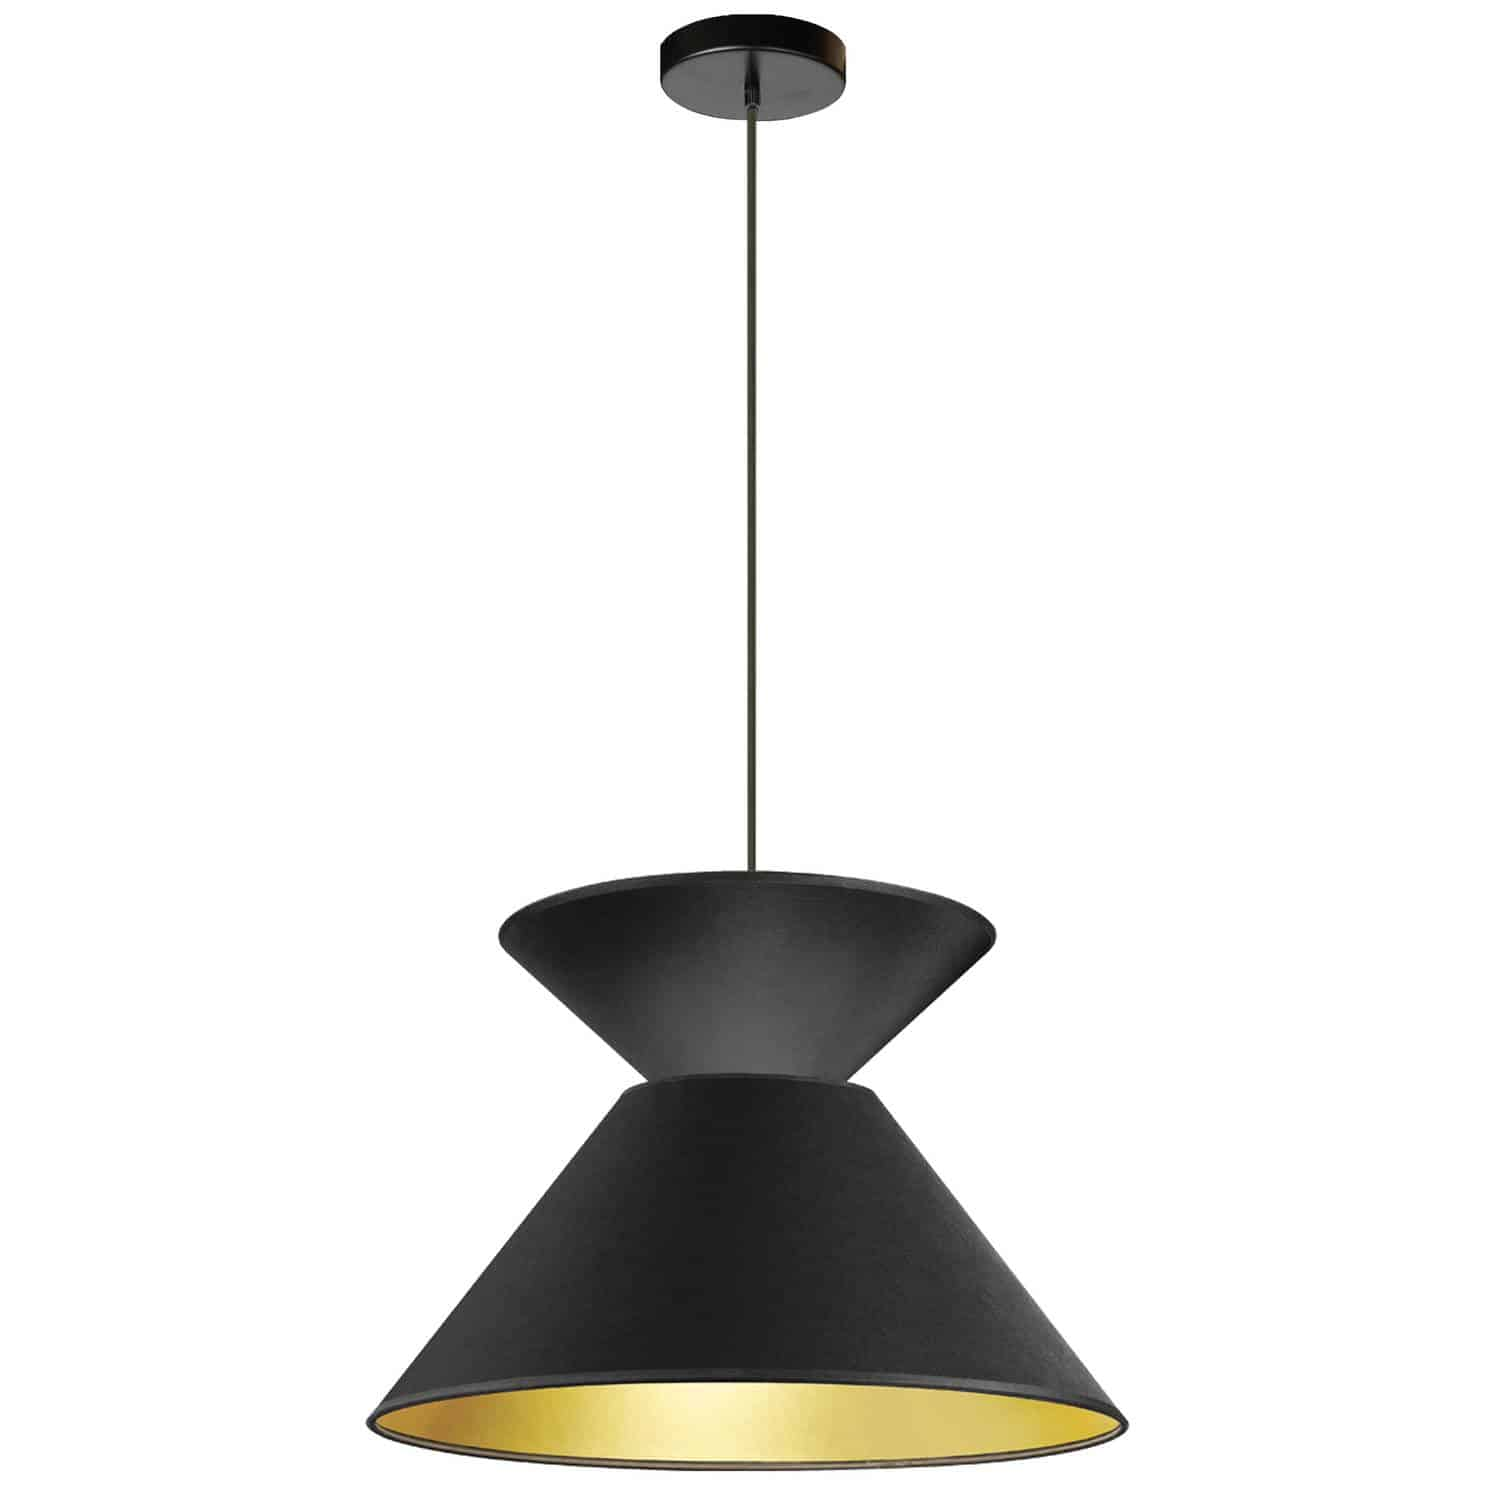 1 Light Patricia Pendant, Matte Black with Black/Gold Shade